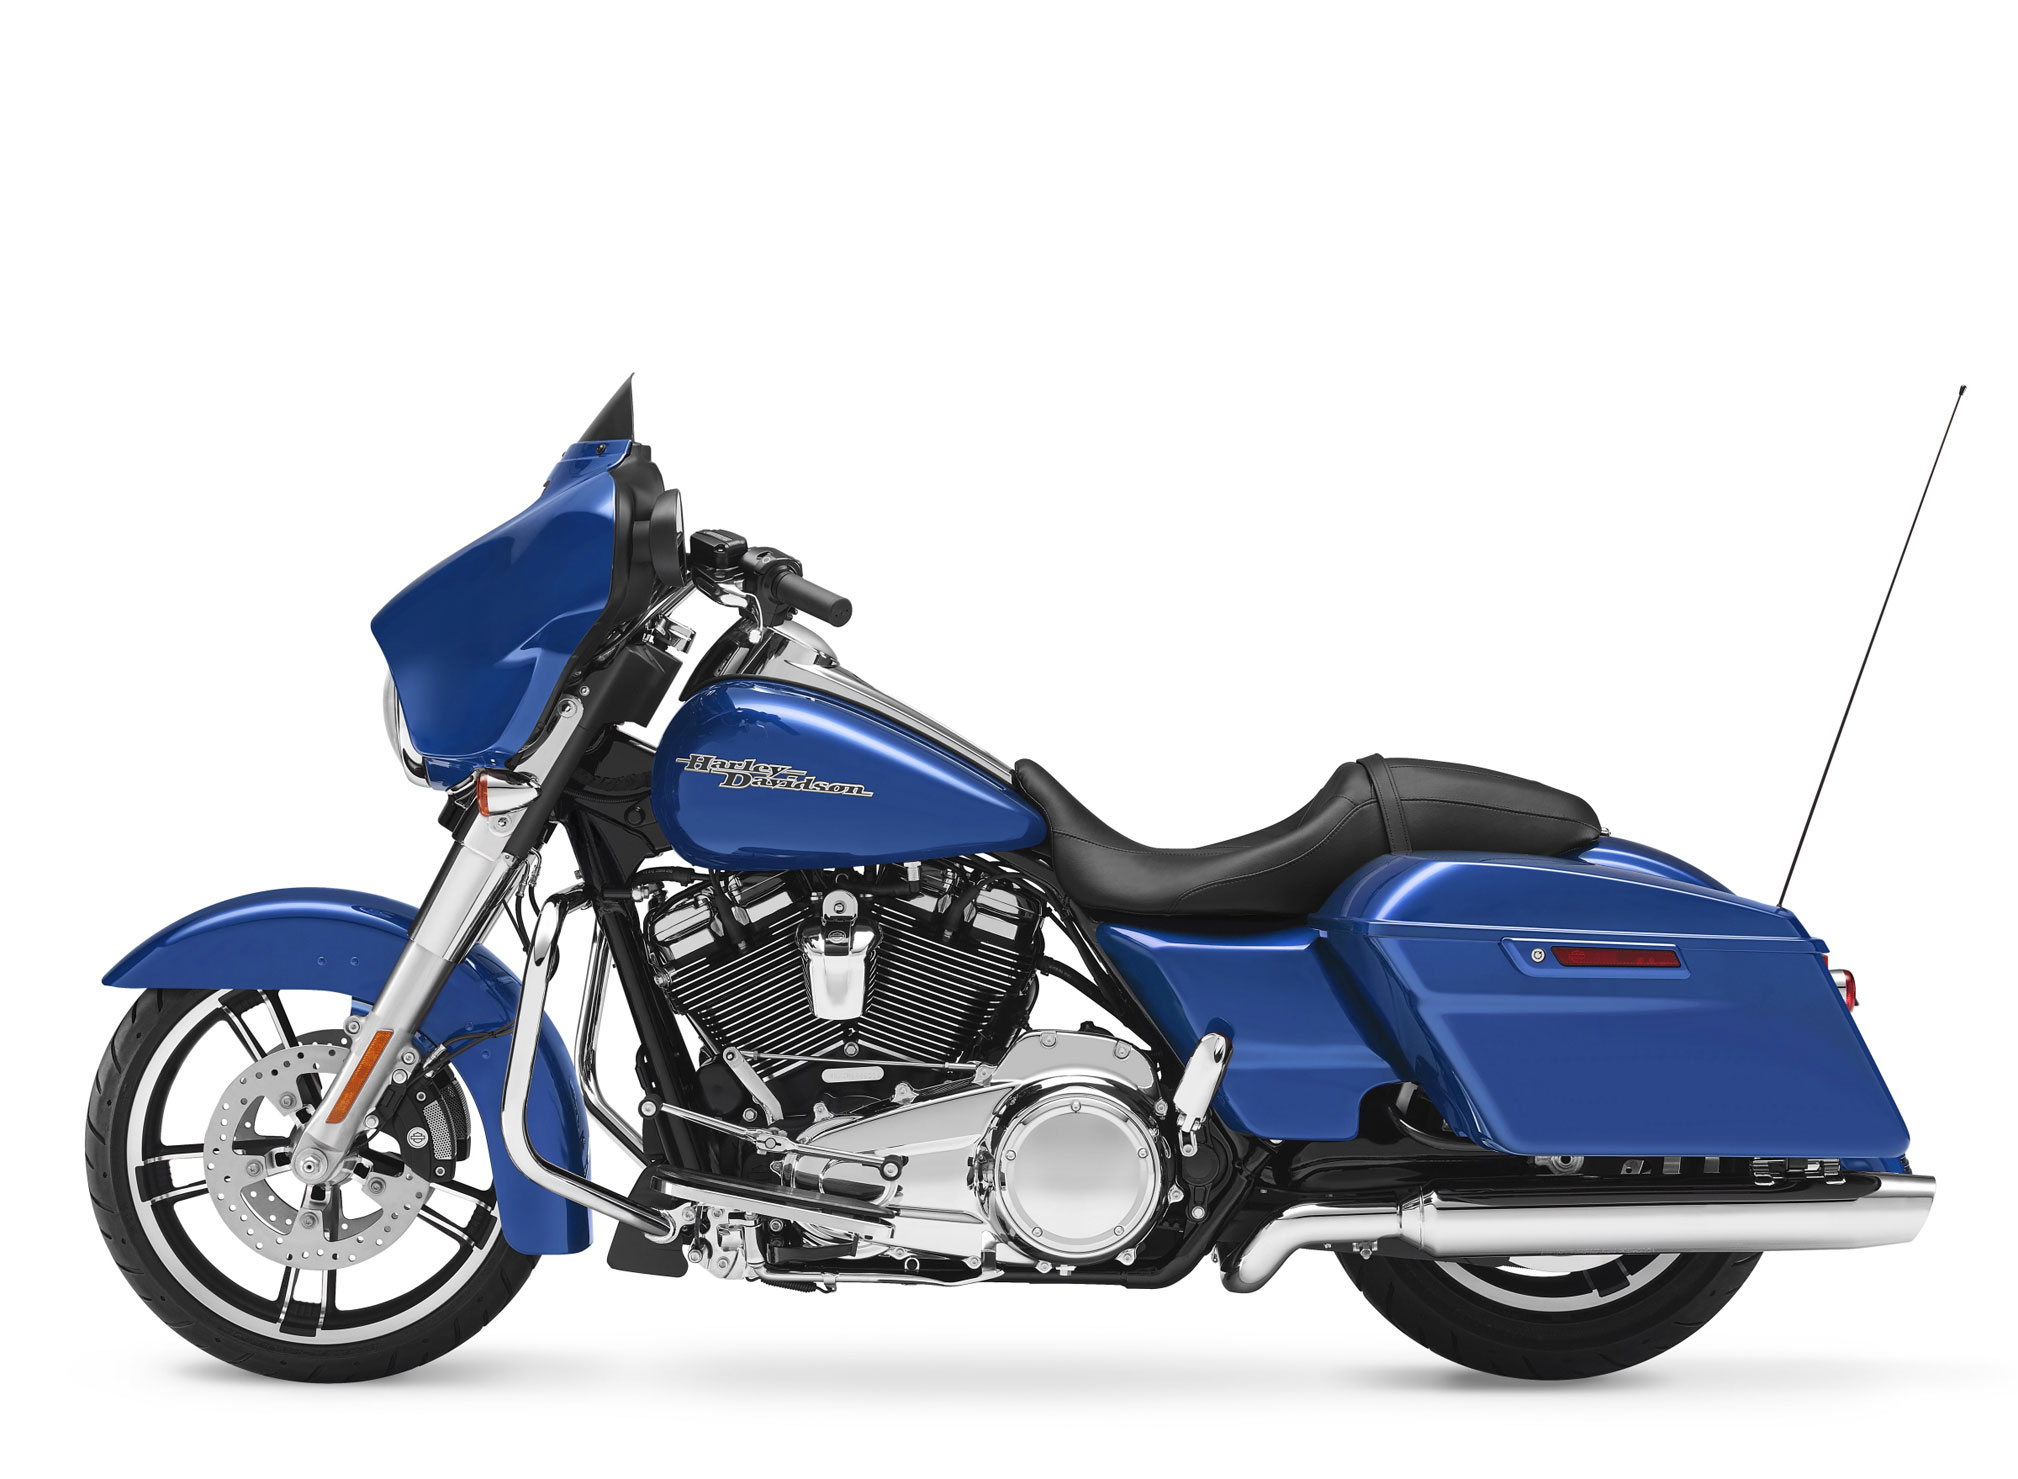 08 Harley Davidson Color Chart | thelifeisdream